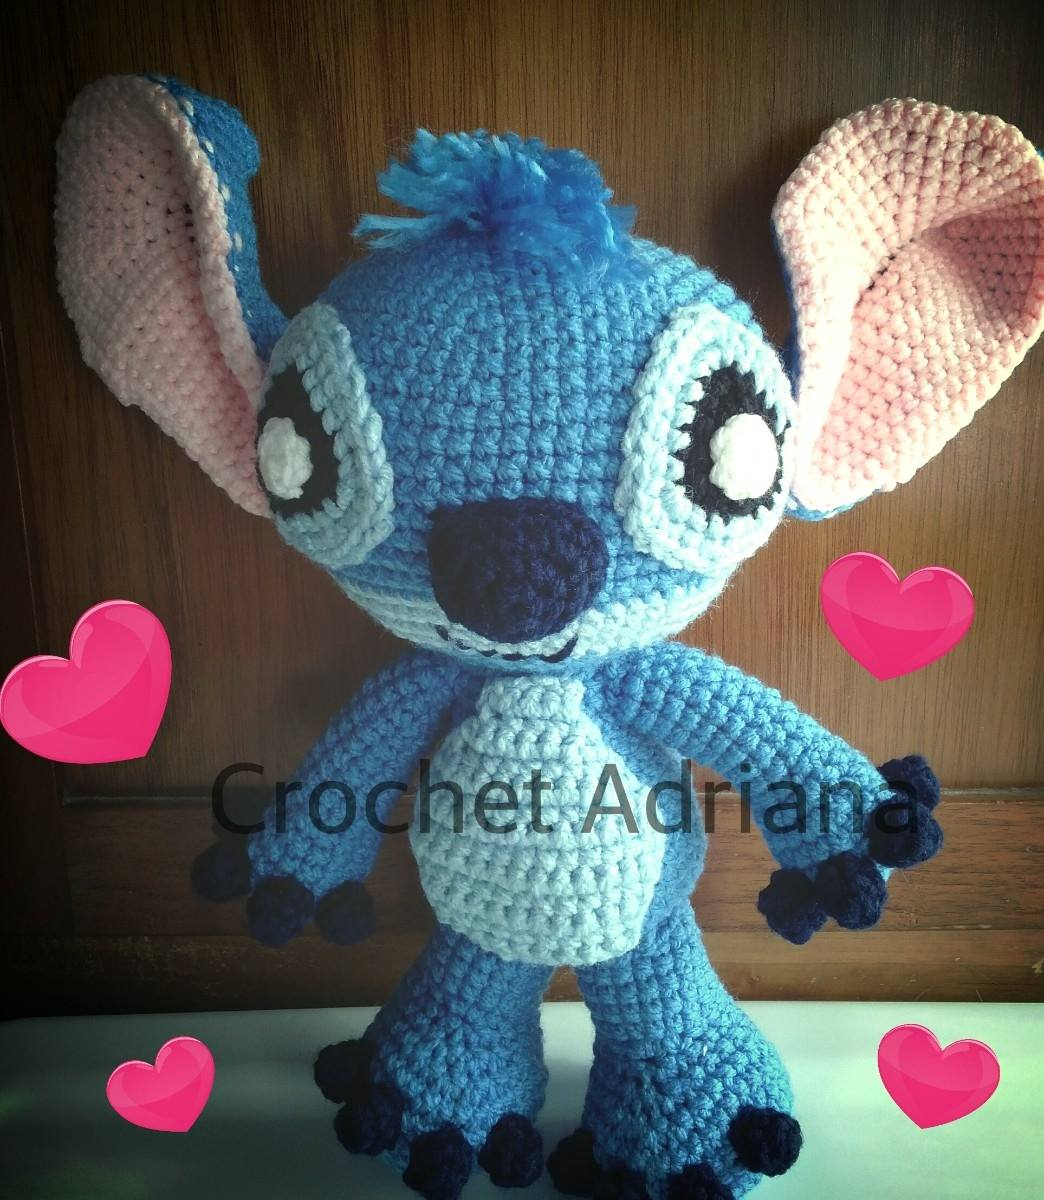 stitch amigurumi tejido crochet 1 en mercado libre. Black Bedroom Furniture Sets. Home Design Ideas